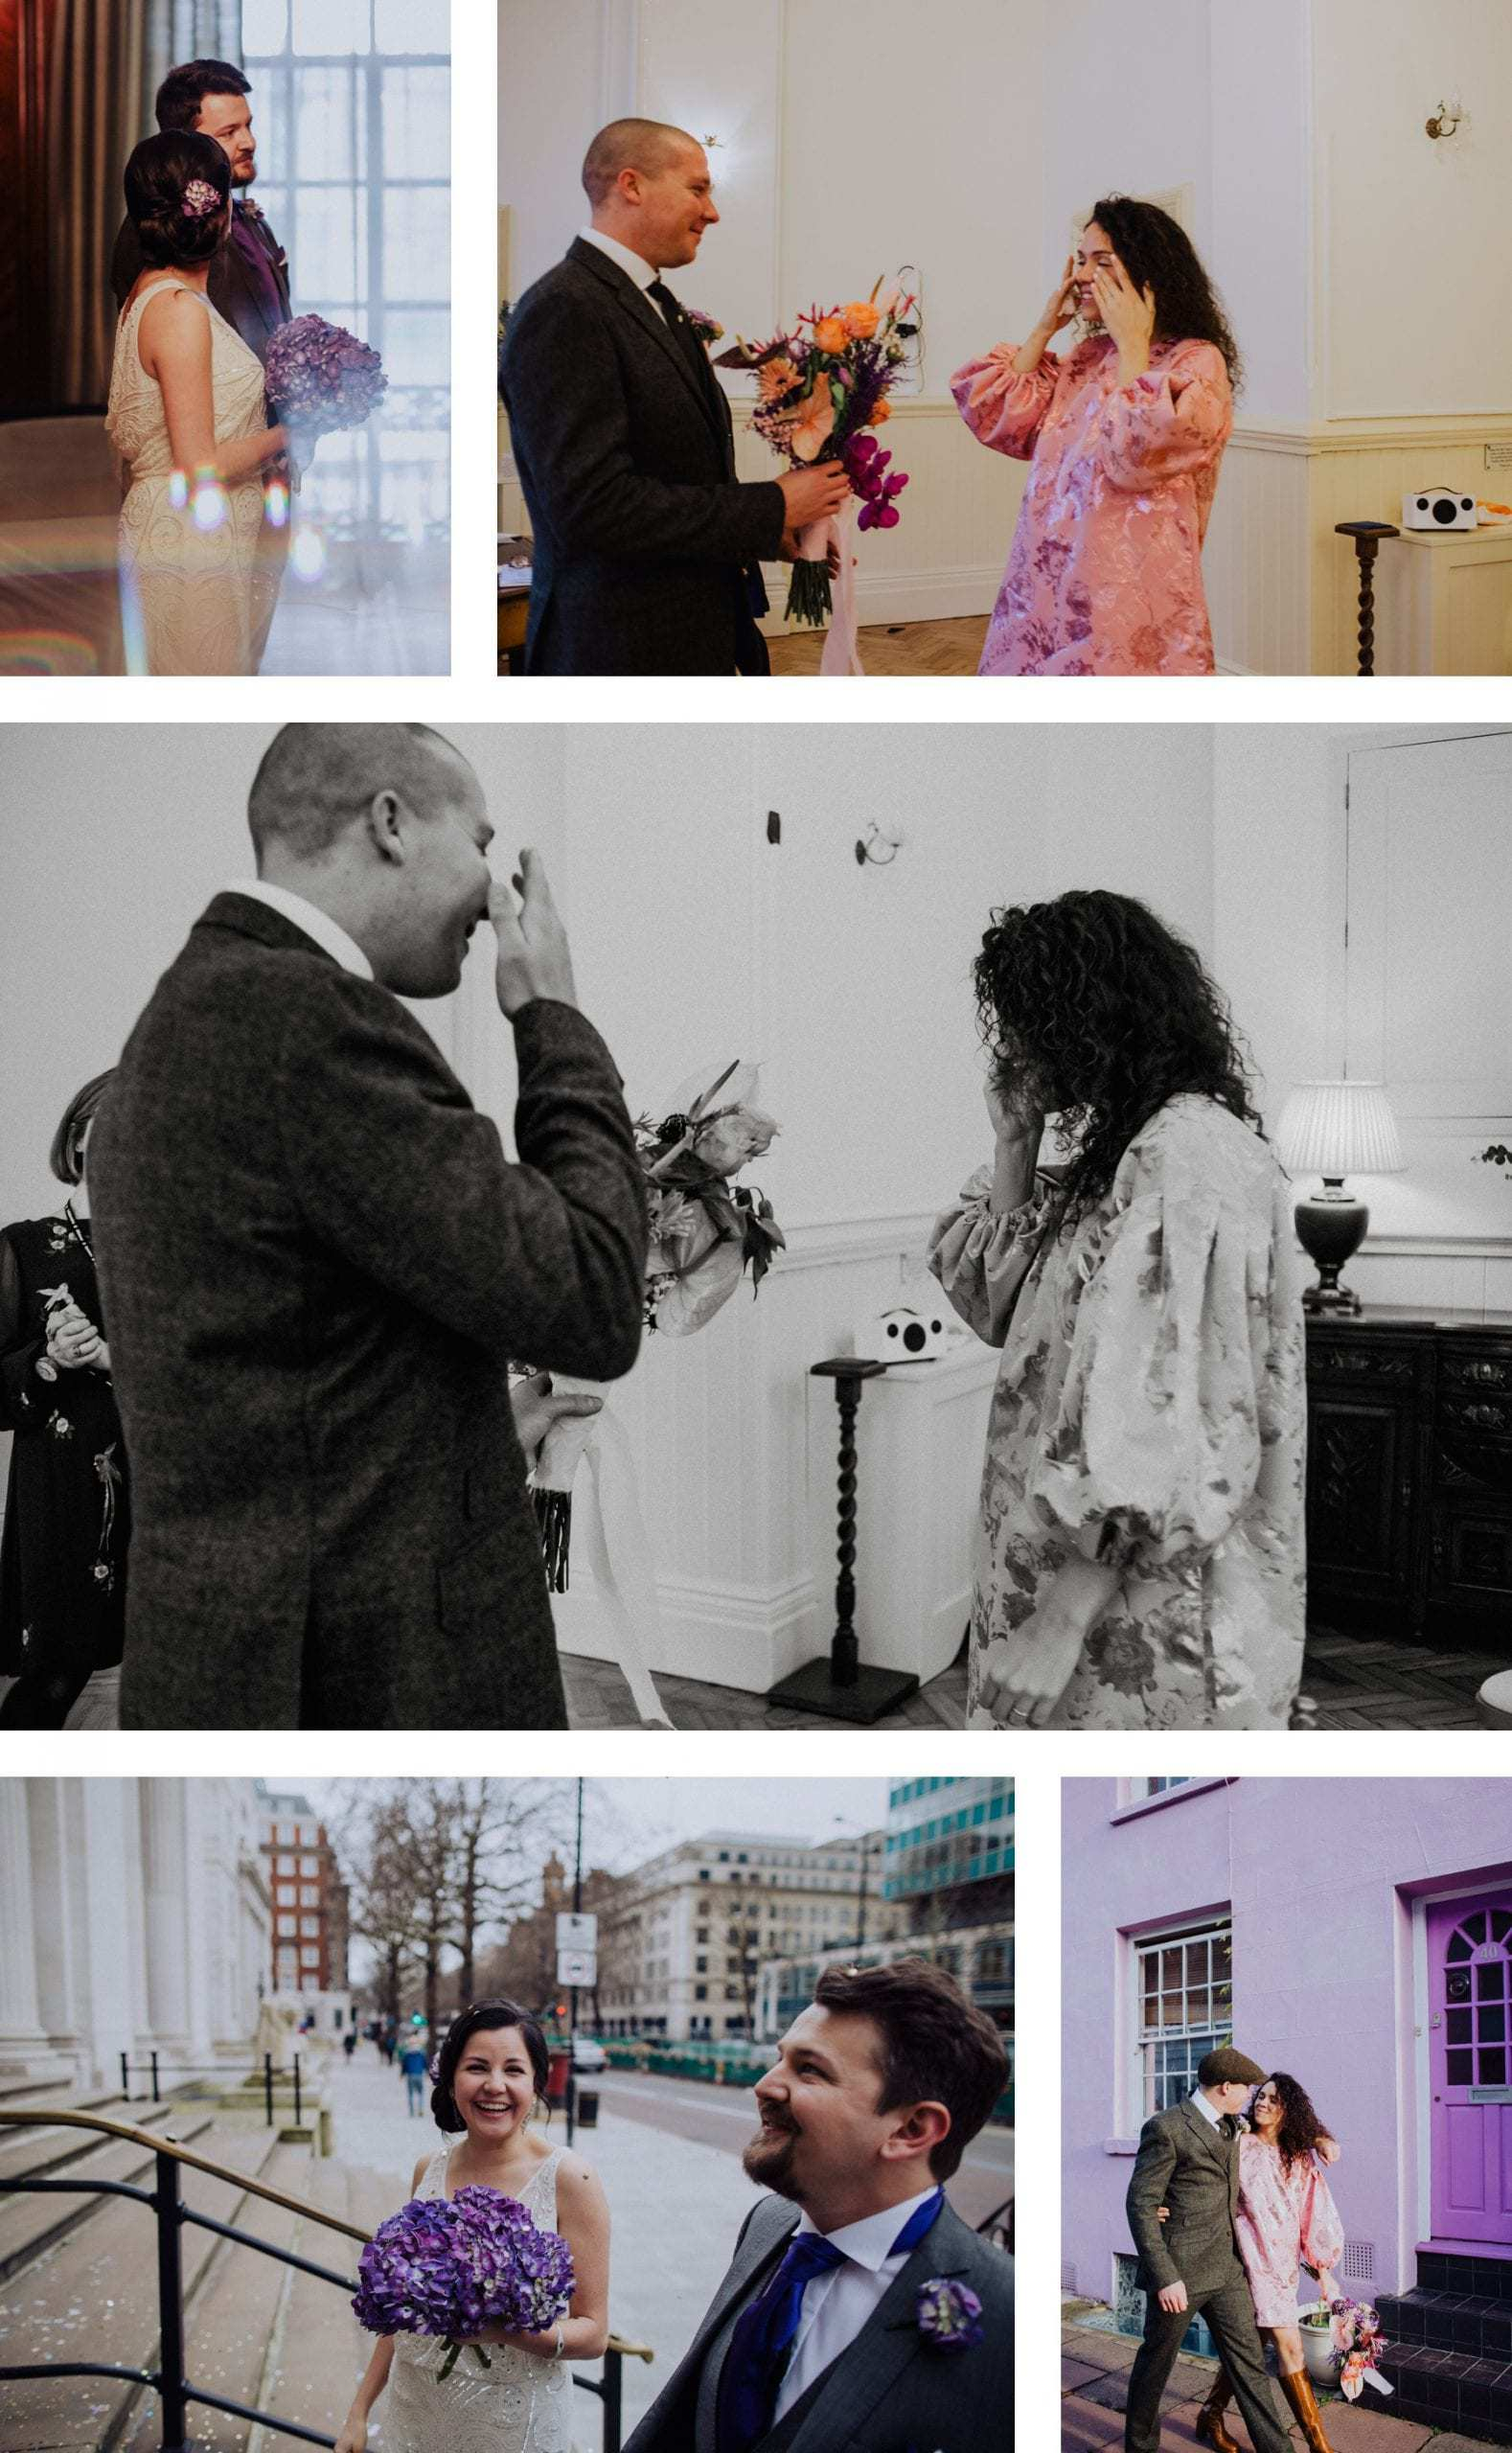 Couples getting married at Hackney Town Hall